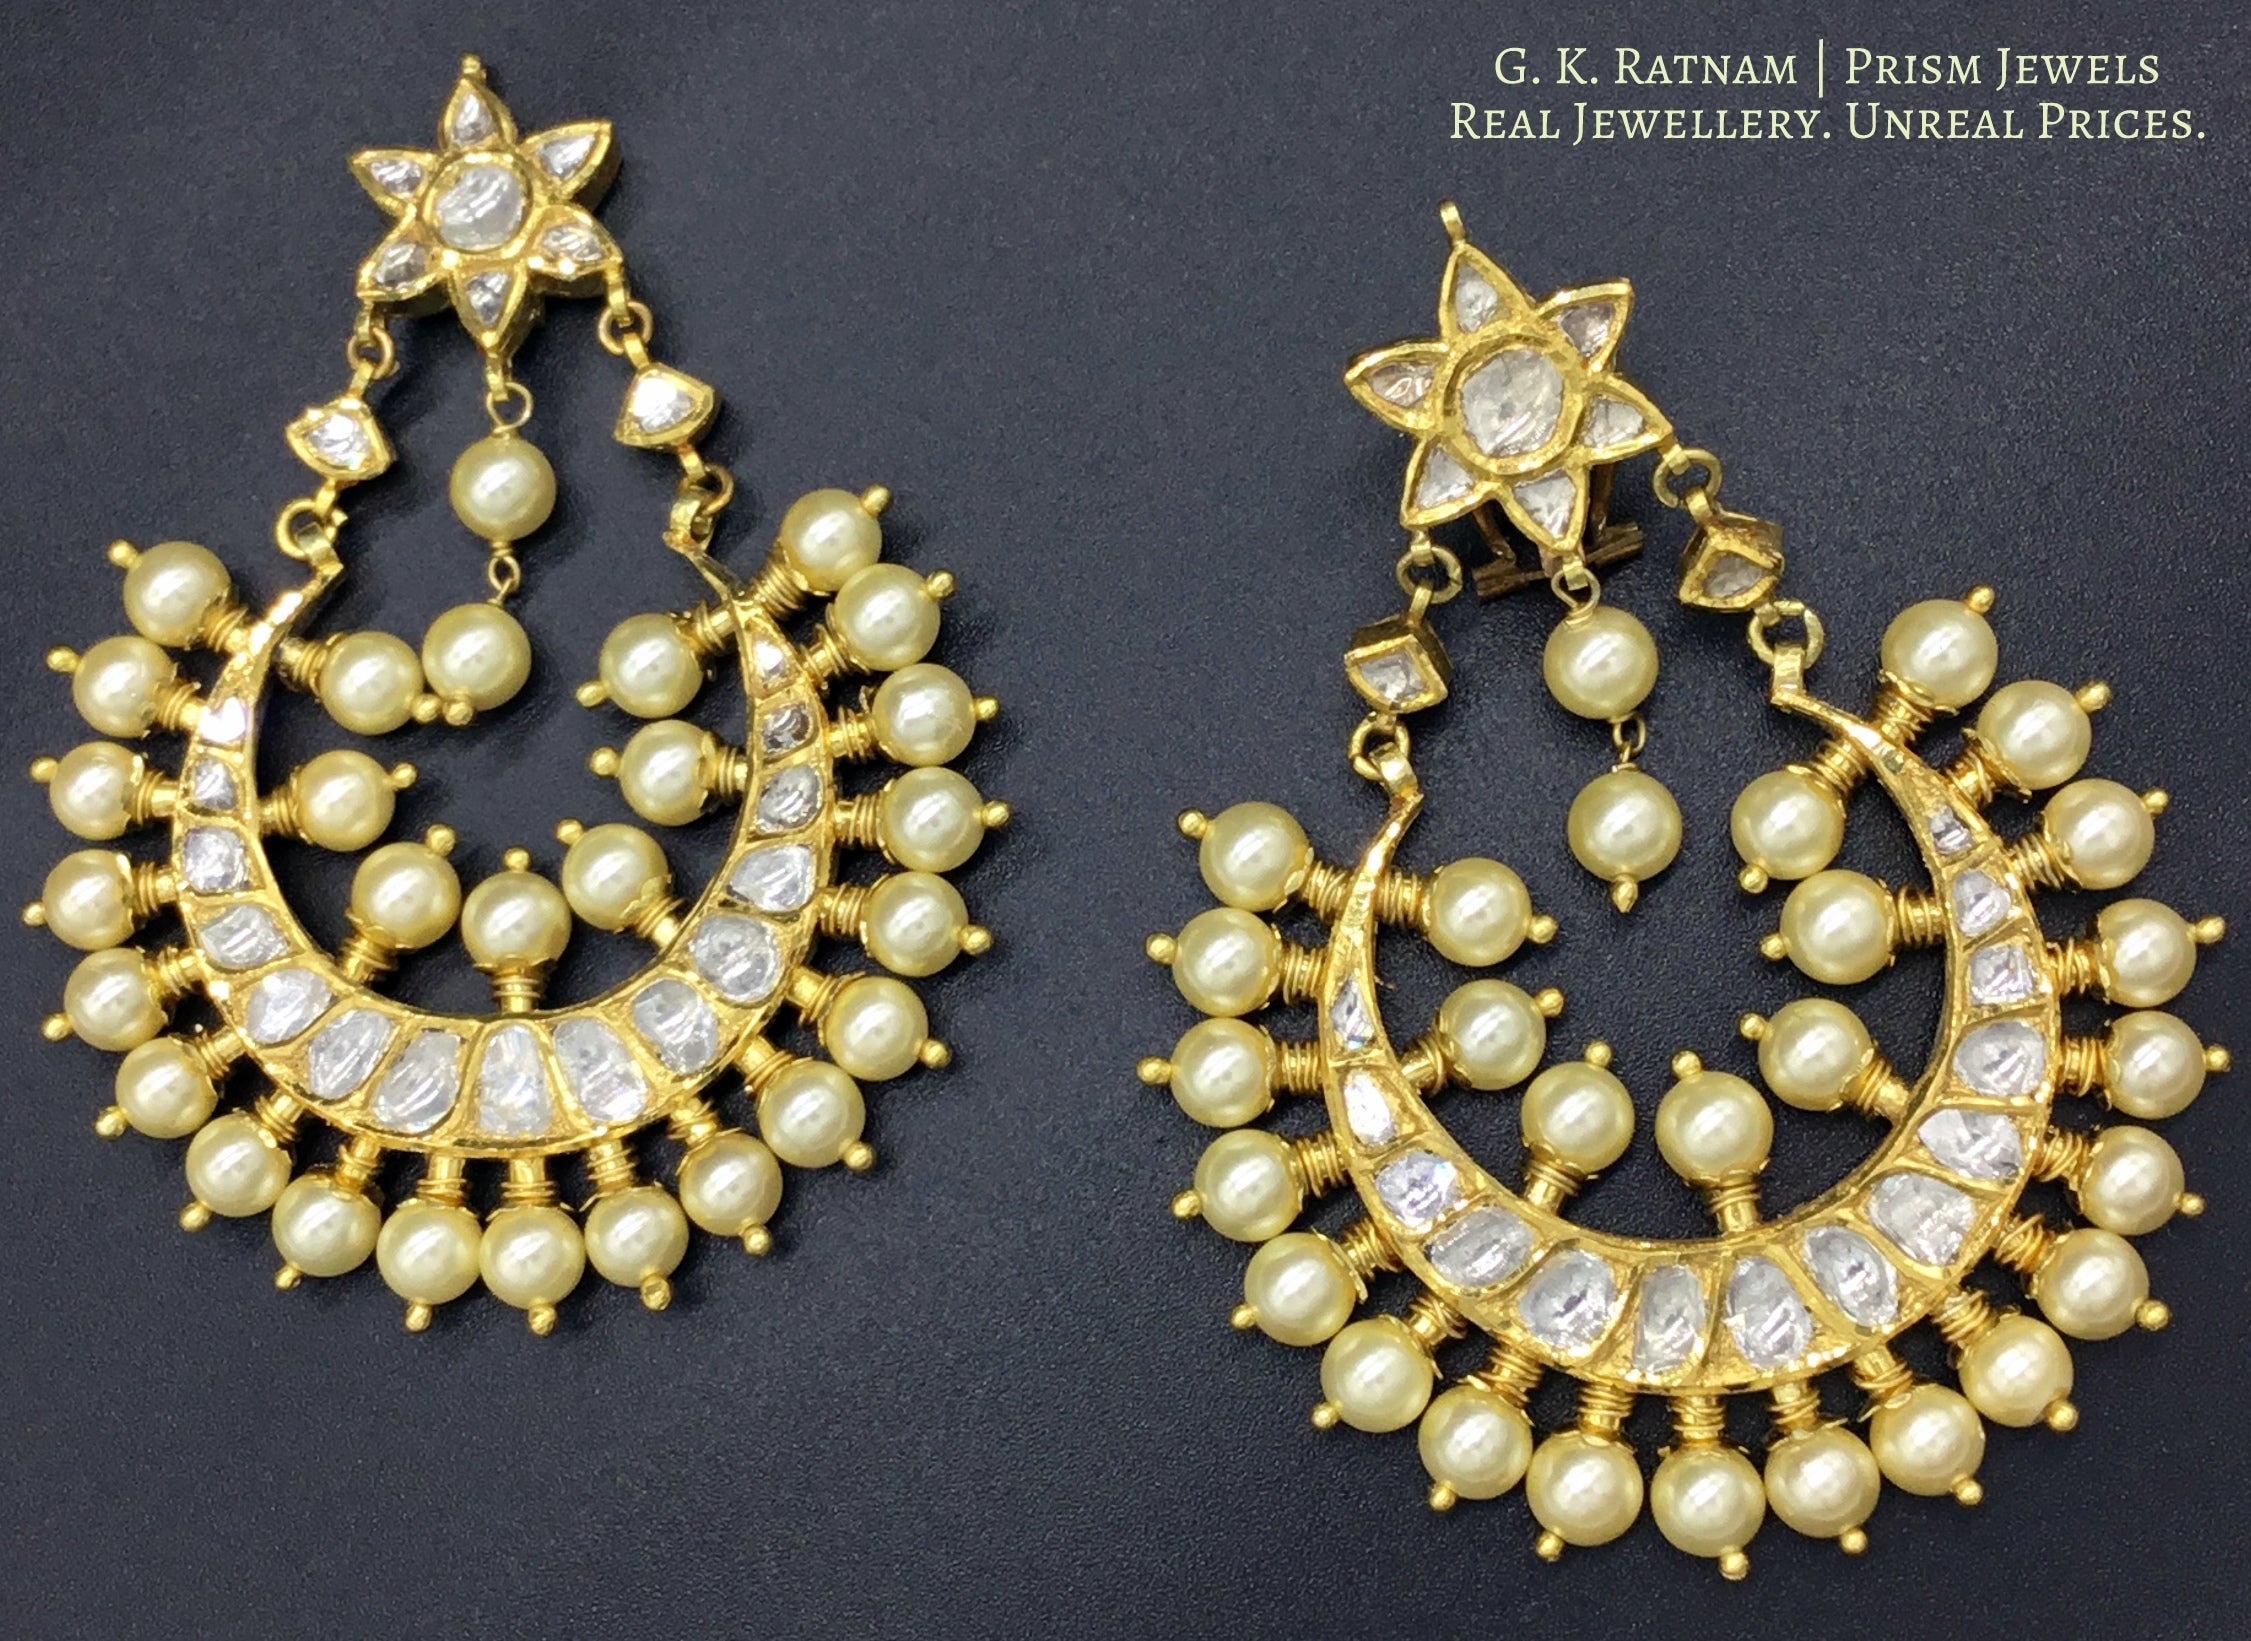 18k Gold and Diamond Polki Chand Bali Earrings with Pearls - gold diamond polki kundan meena jadau jewellery